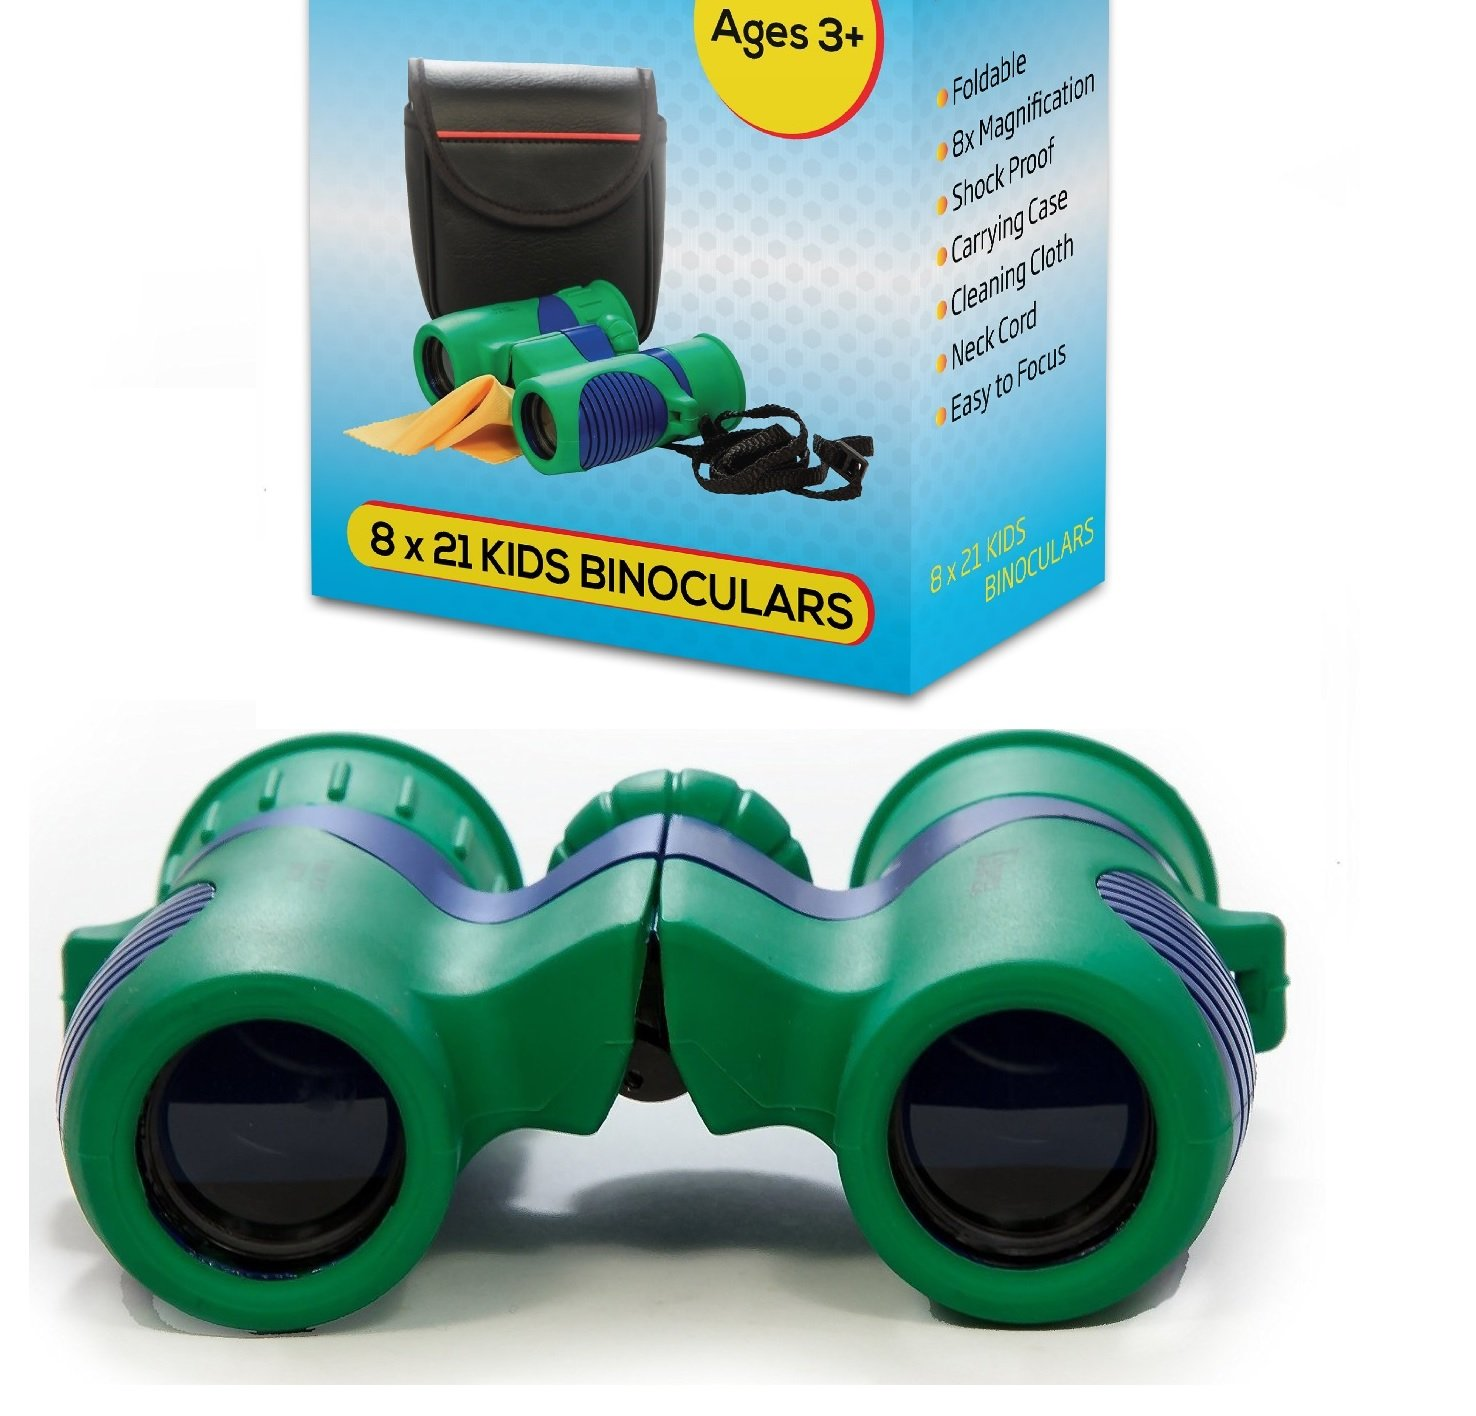 Kidwinz Original Compact 8x21 Kids Binoculars Set